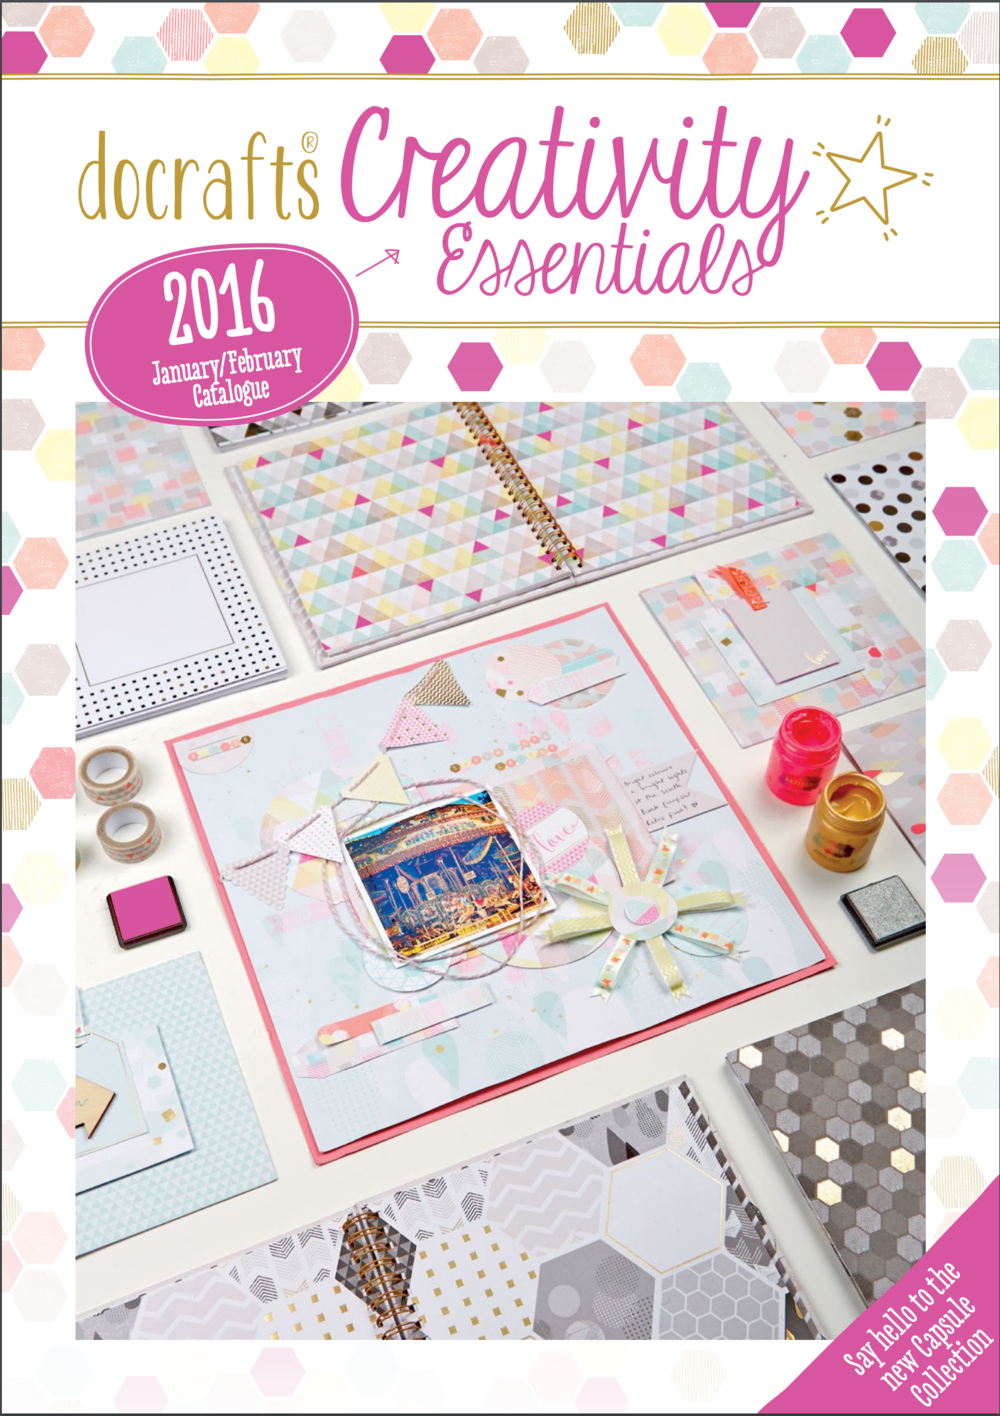 Editor, Creativity Essentials: Docrafts' bi-monthly trade catalogue. Editorial development, creative concepts, including custom print solution